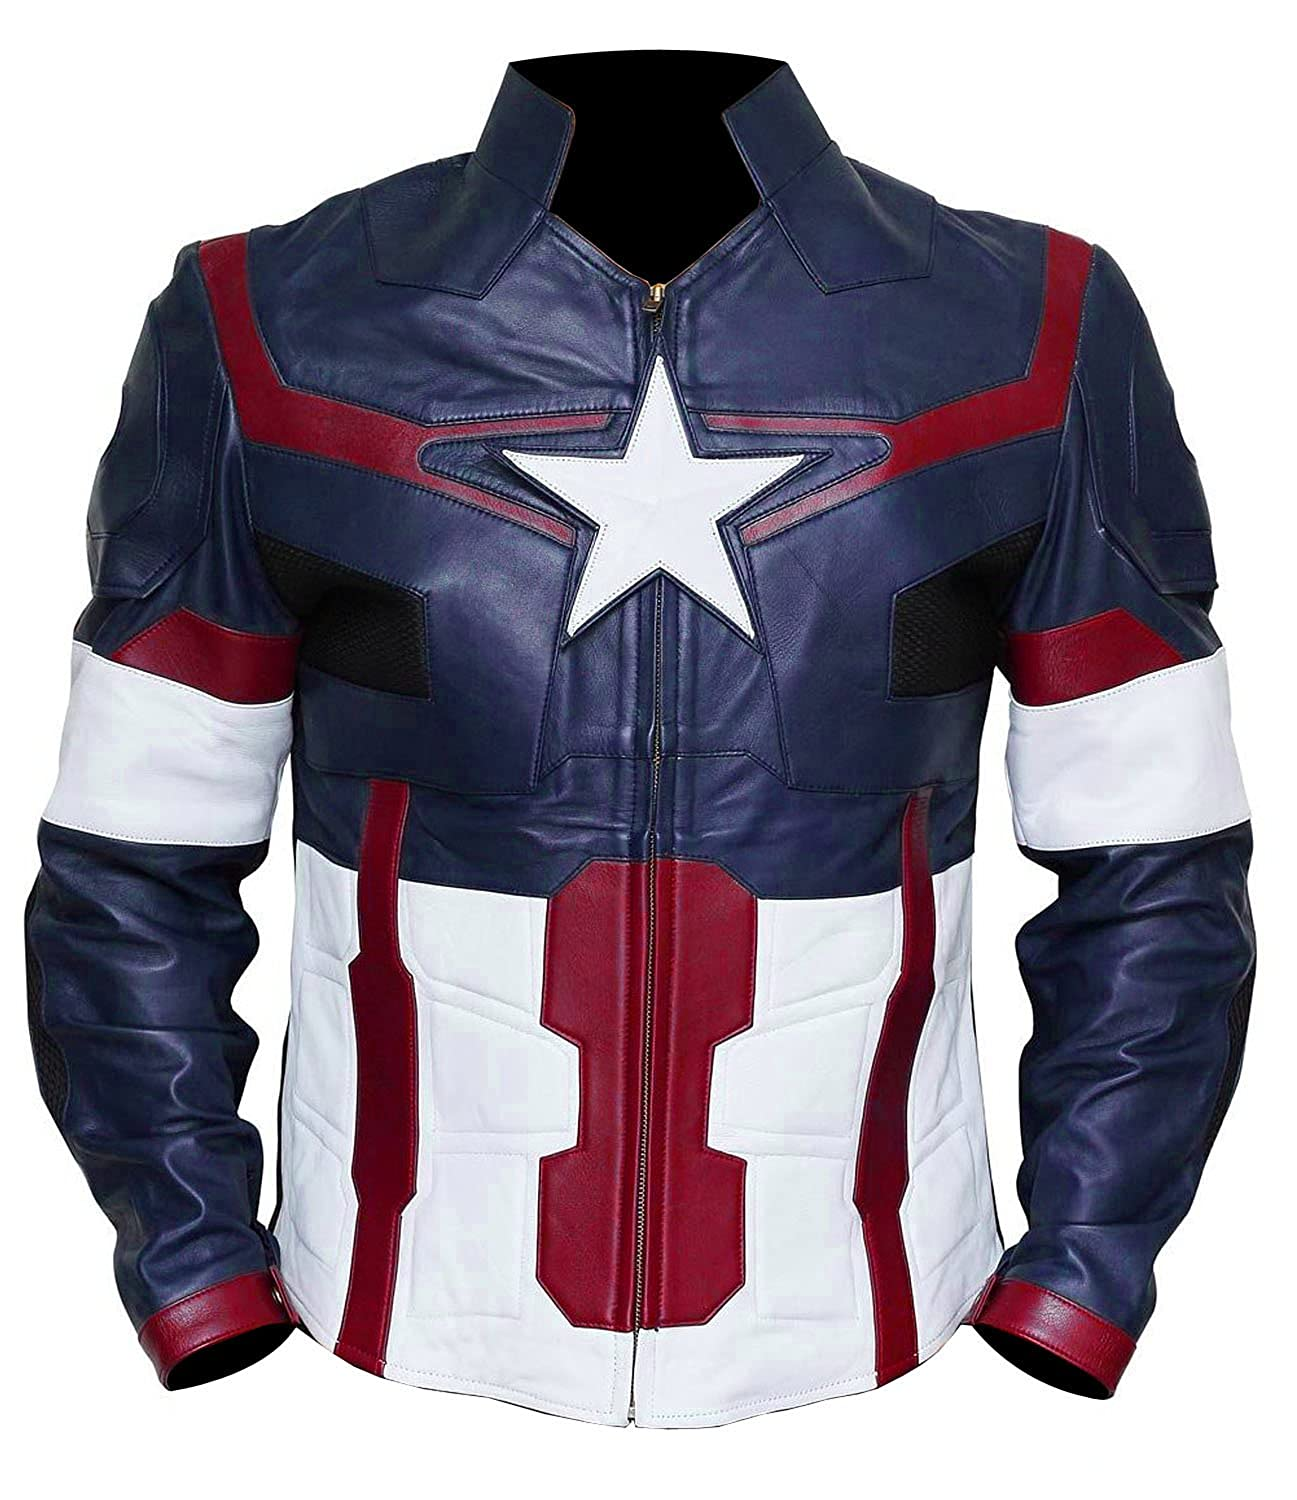 Men's Avengers: Age of Ultron Captain America Blue Faux Leather Jacket - DeluxeAdultCostumes.com